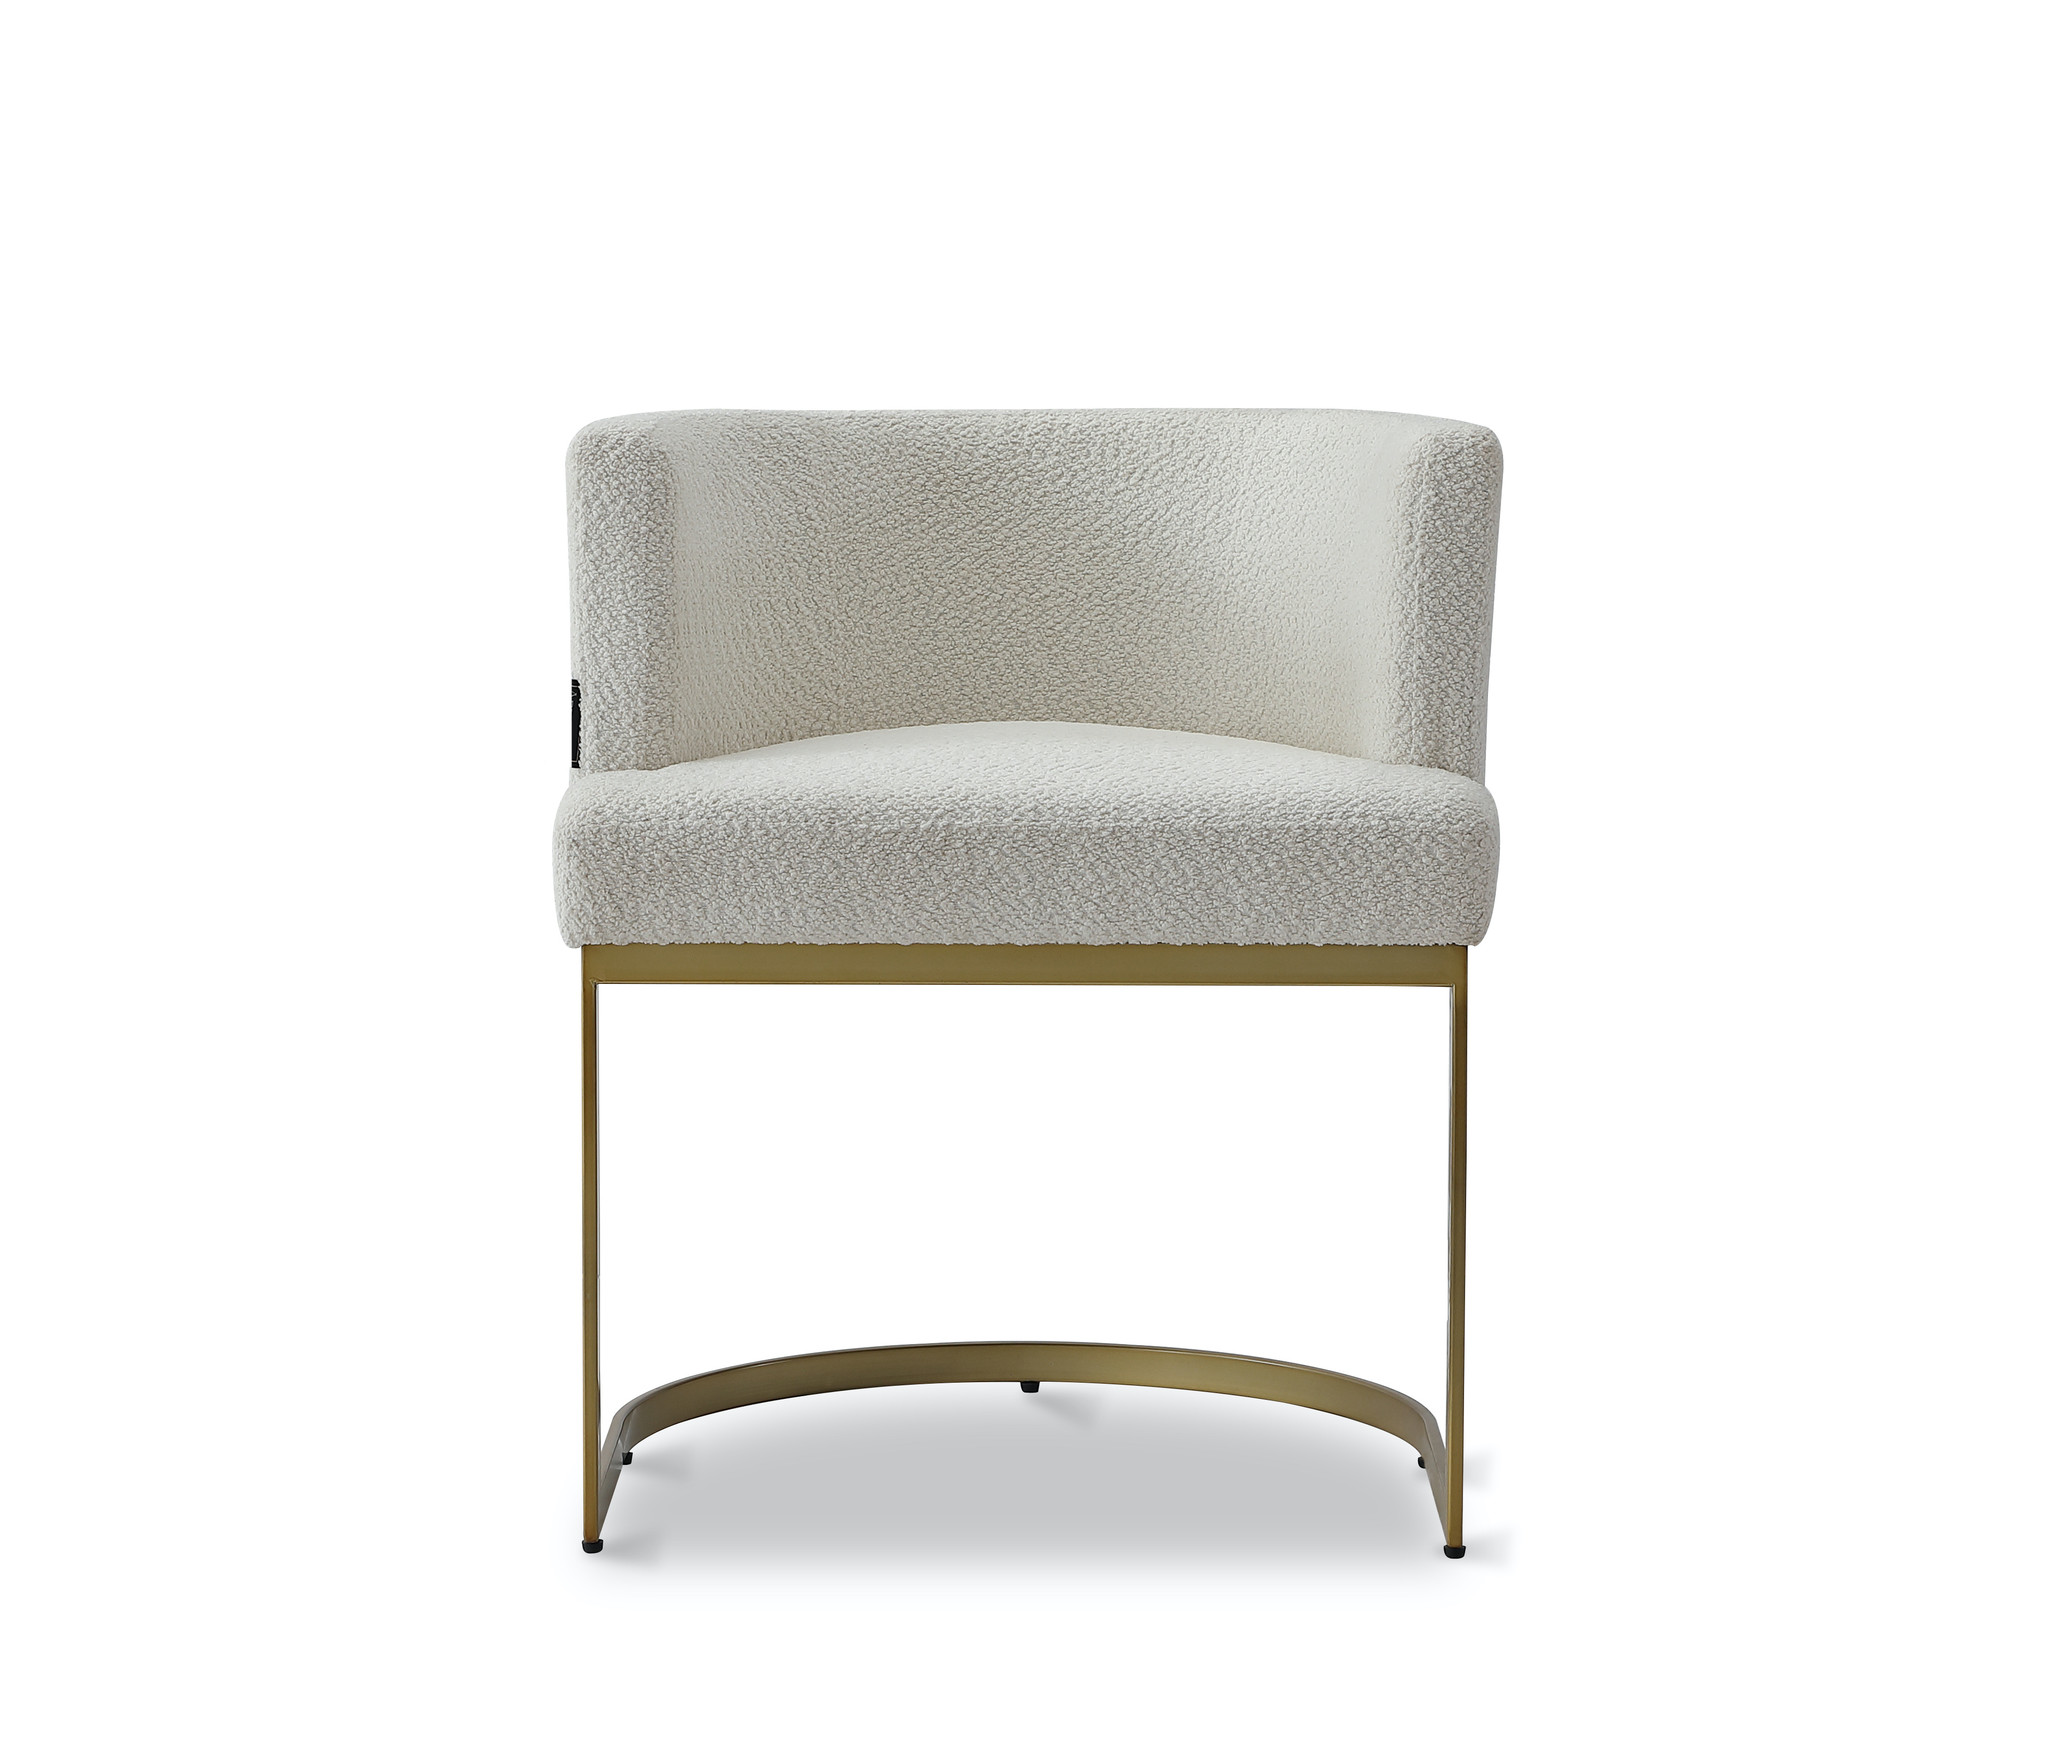 PIMLICO Dining Chair Boucle-3